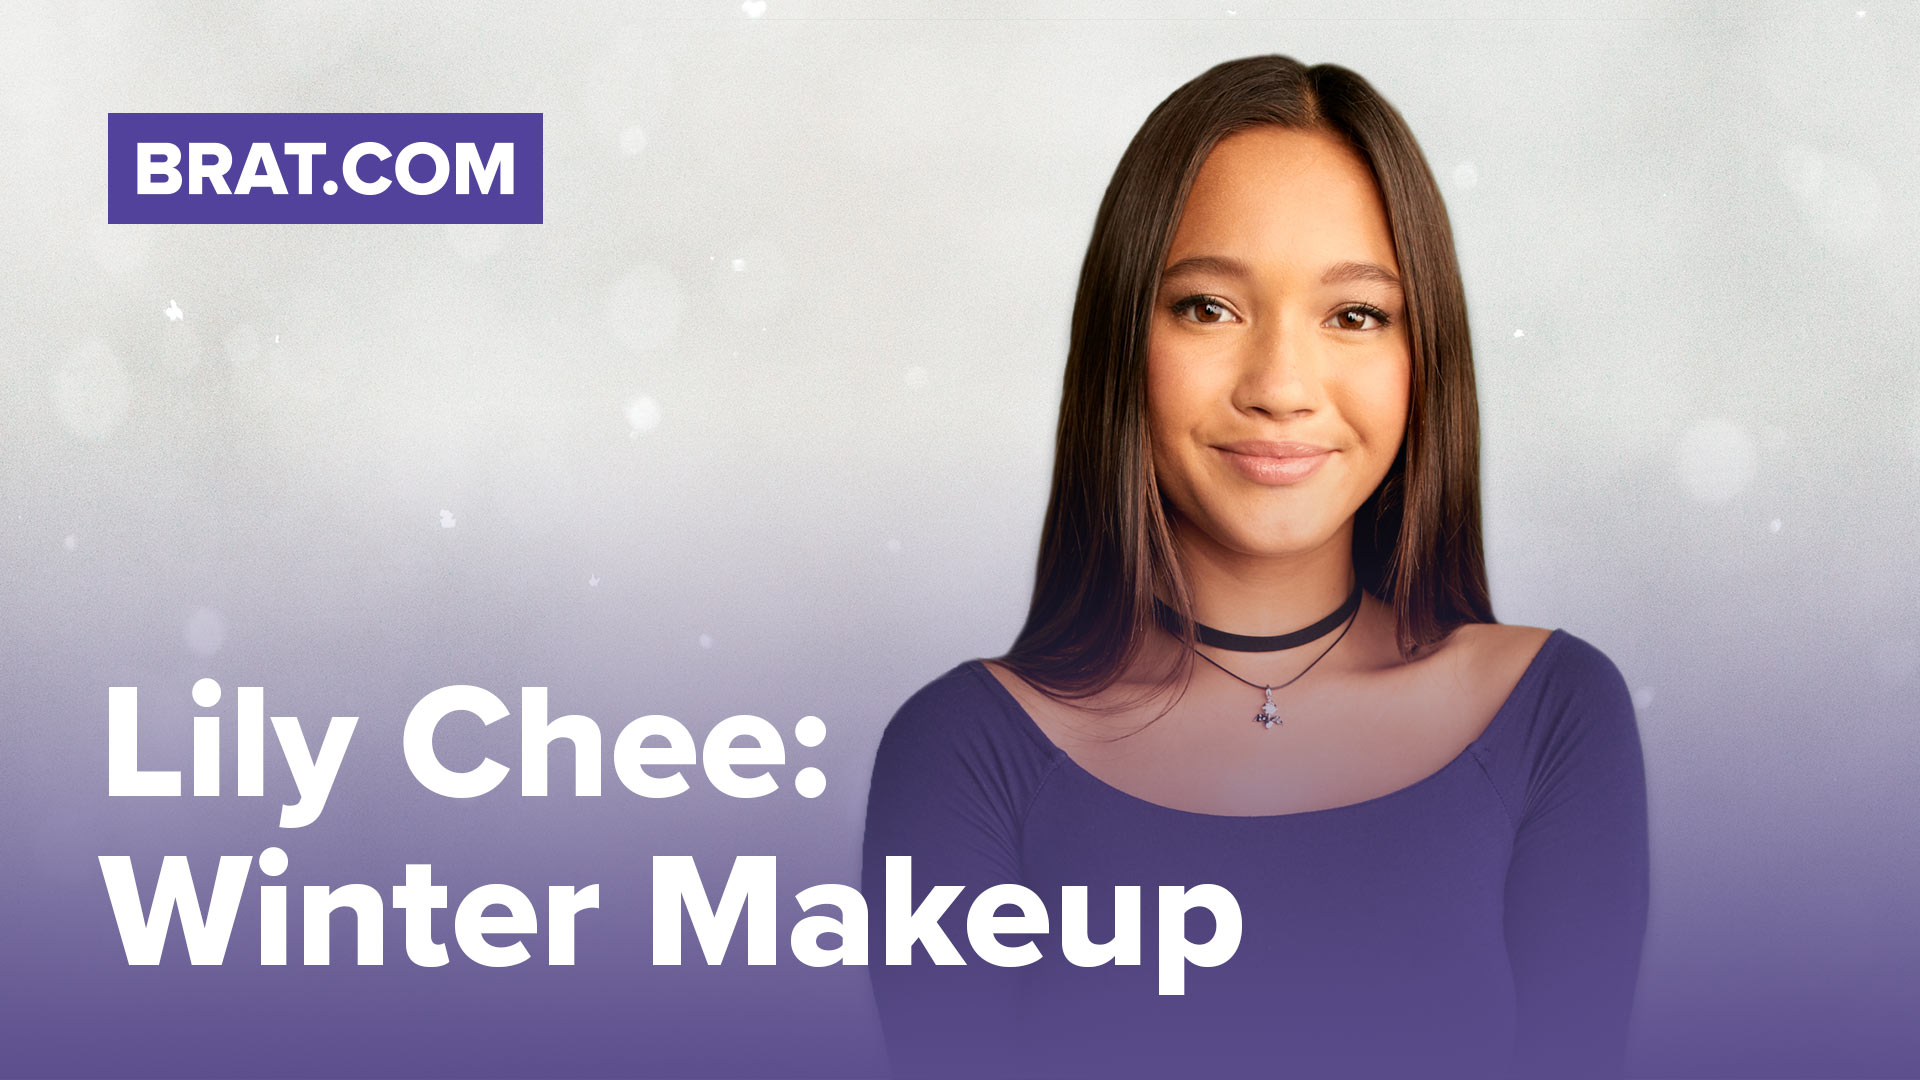 Lily-Chee--Winter-Makeup_Article_Wide.jpg